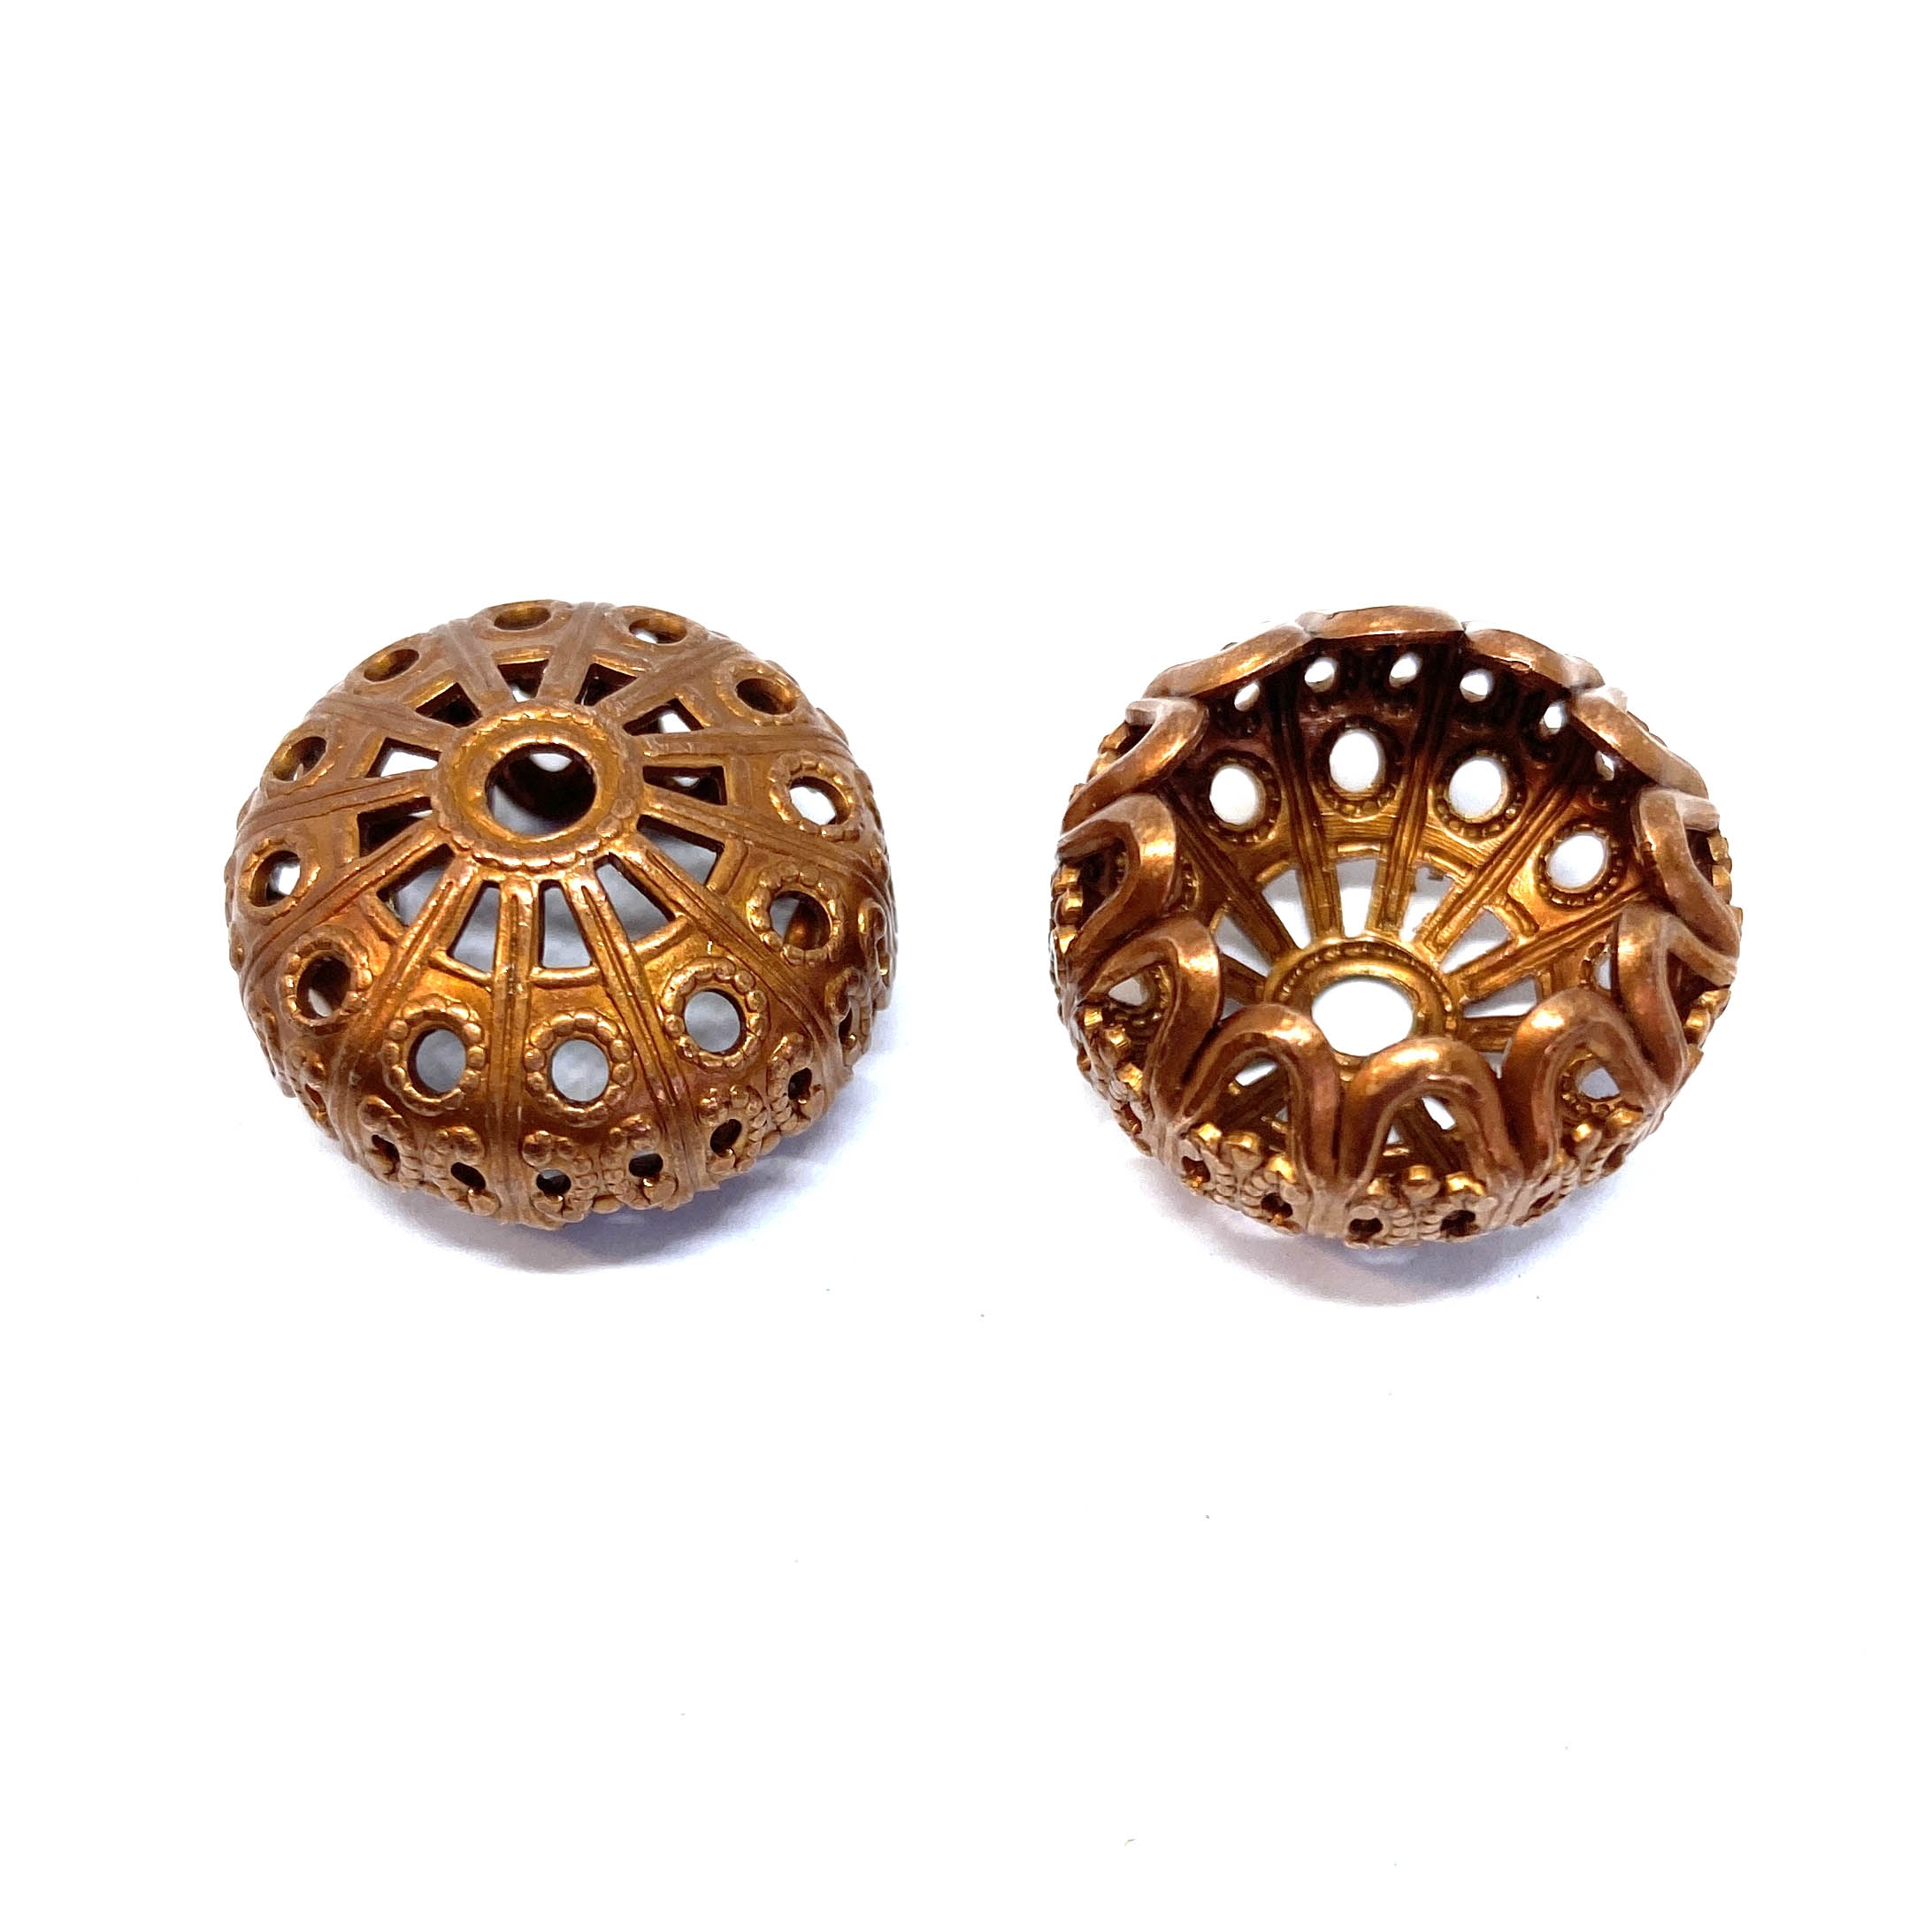 Victorian filigree bead, gingerbread brass, brass stamping, bead, filigree bead, filigree stamping, bead, 19x11mm, US-made, antique copper, tassel cap, bead cap, Victorian style, nickel-free, B'sue Boutiques, vintage supplies, 01687